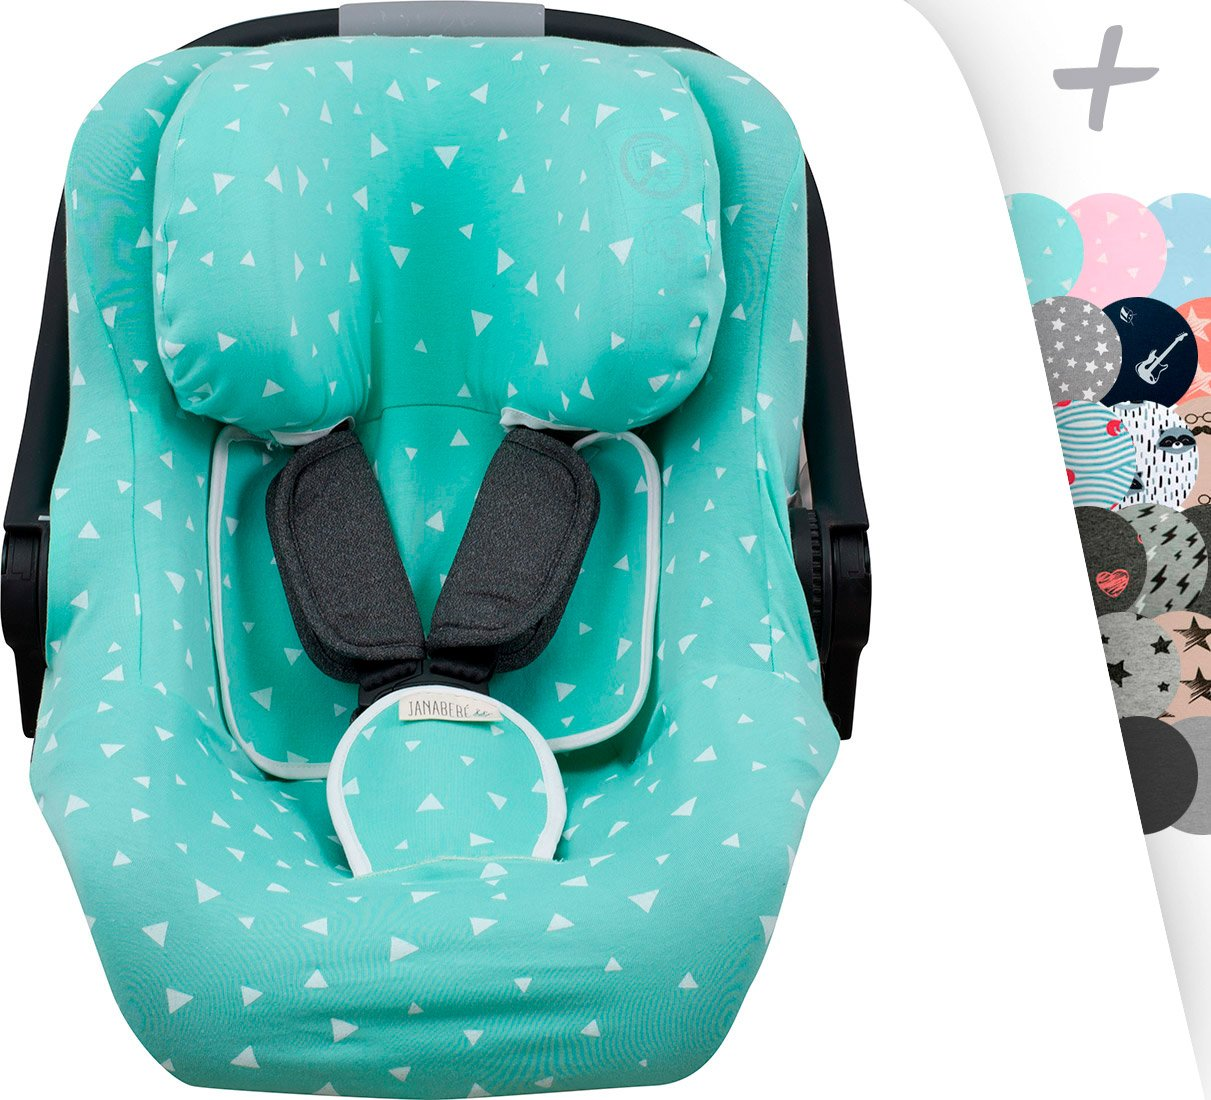 Cover Liner for Jané Koos I-Size, Concord Neo Air Safe and Romer Baby Safe Janabebe® (Crabby)